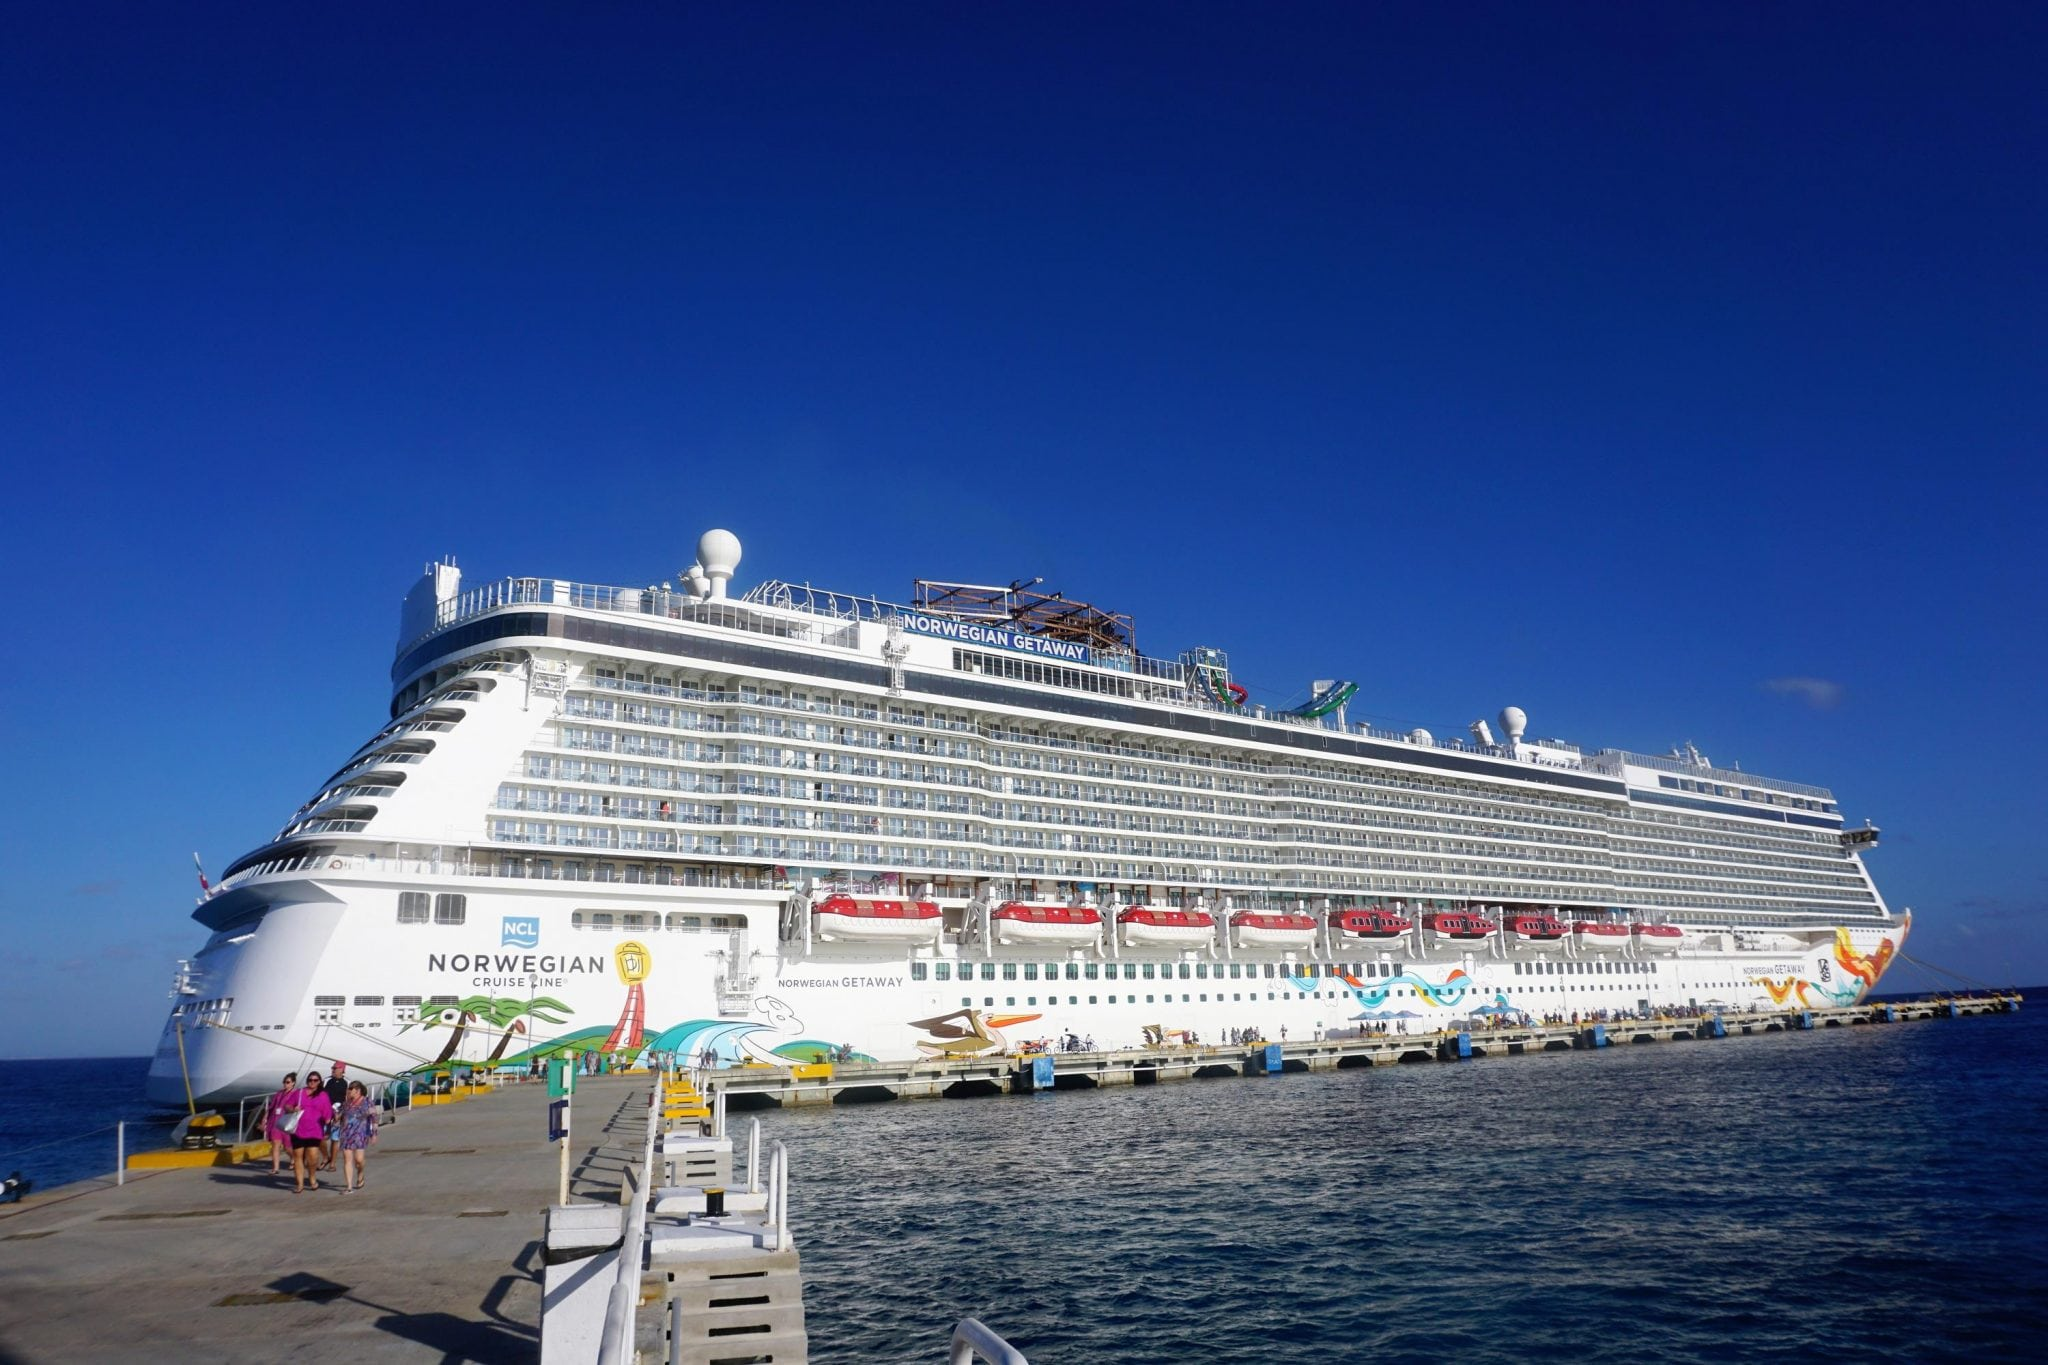 Norwegian Getaway Western Caribbean Cruise Review